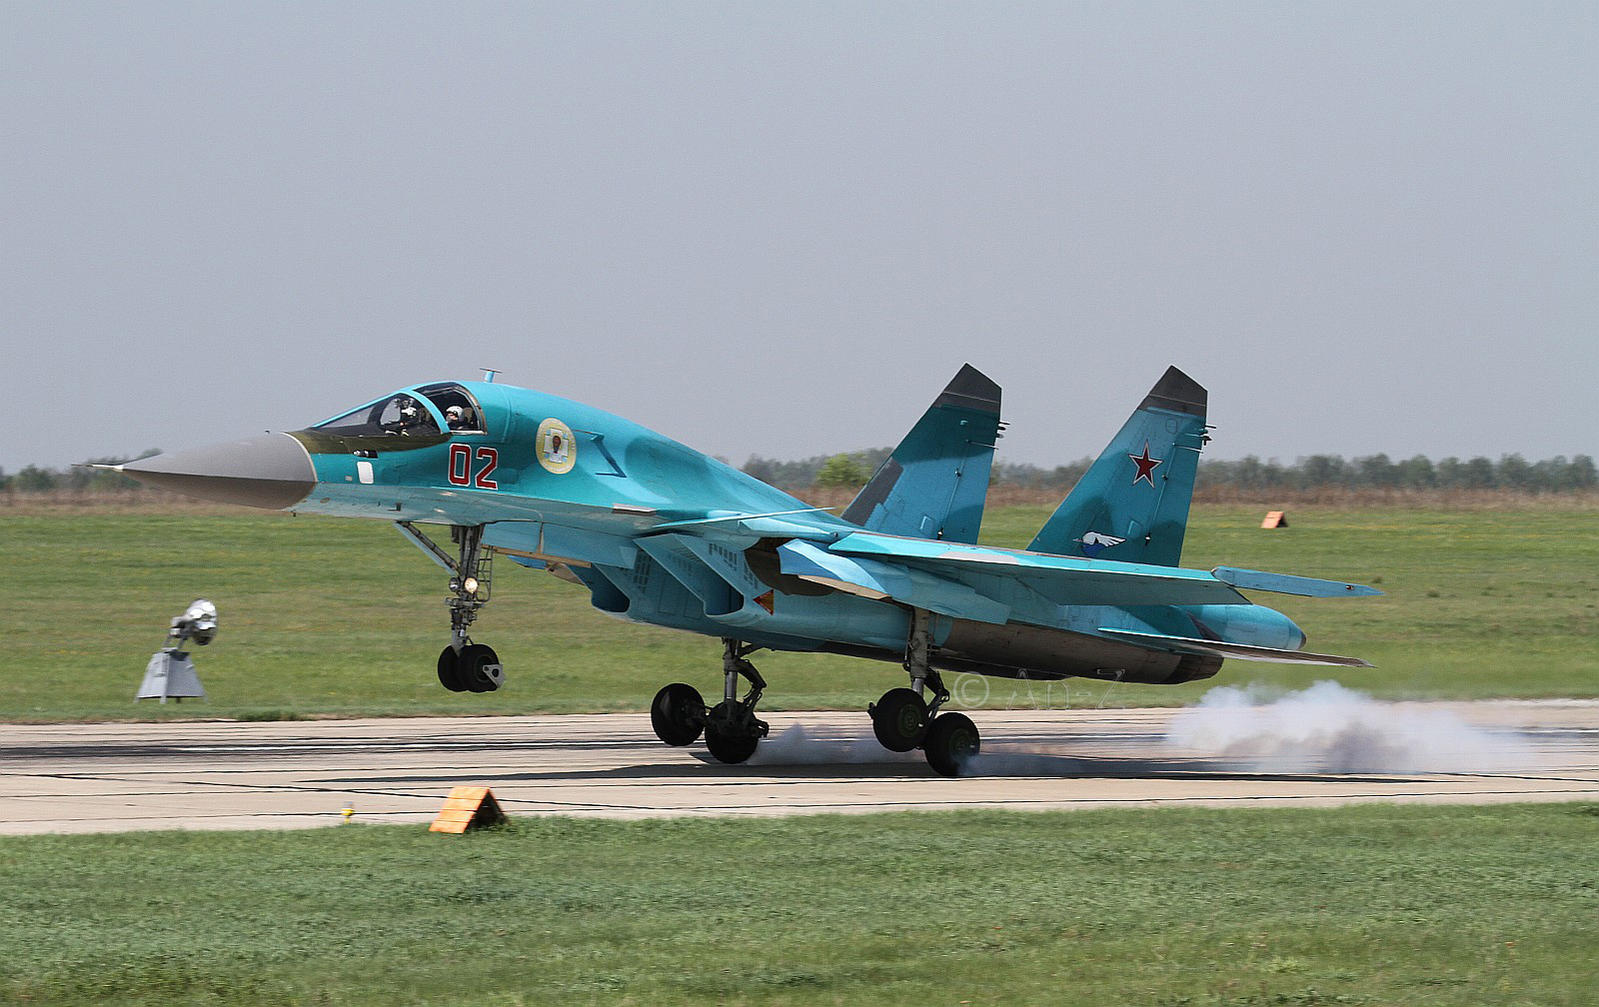 http://forums.airforce.ru/attachment.php?attachmentid=24311&d=1273494139